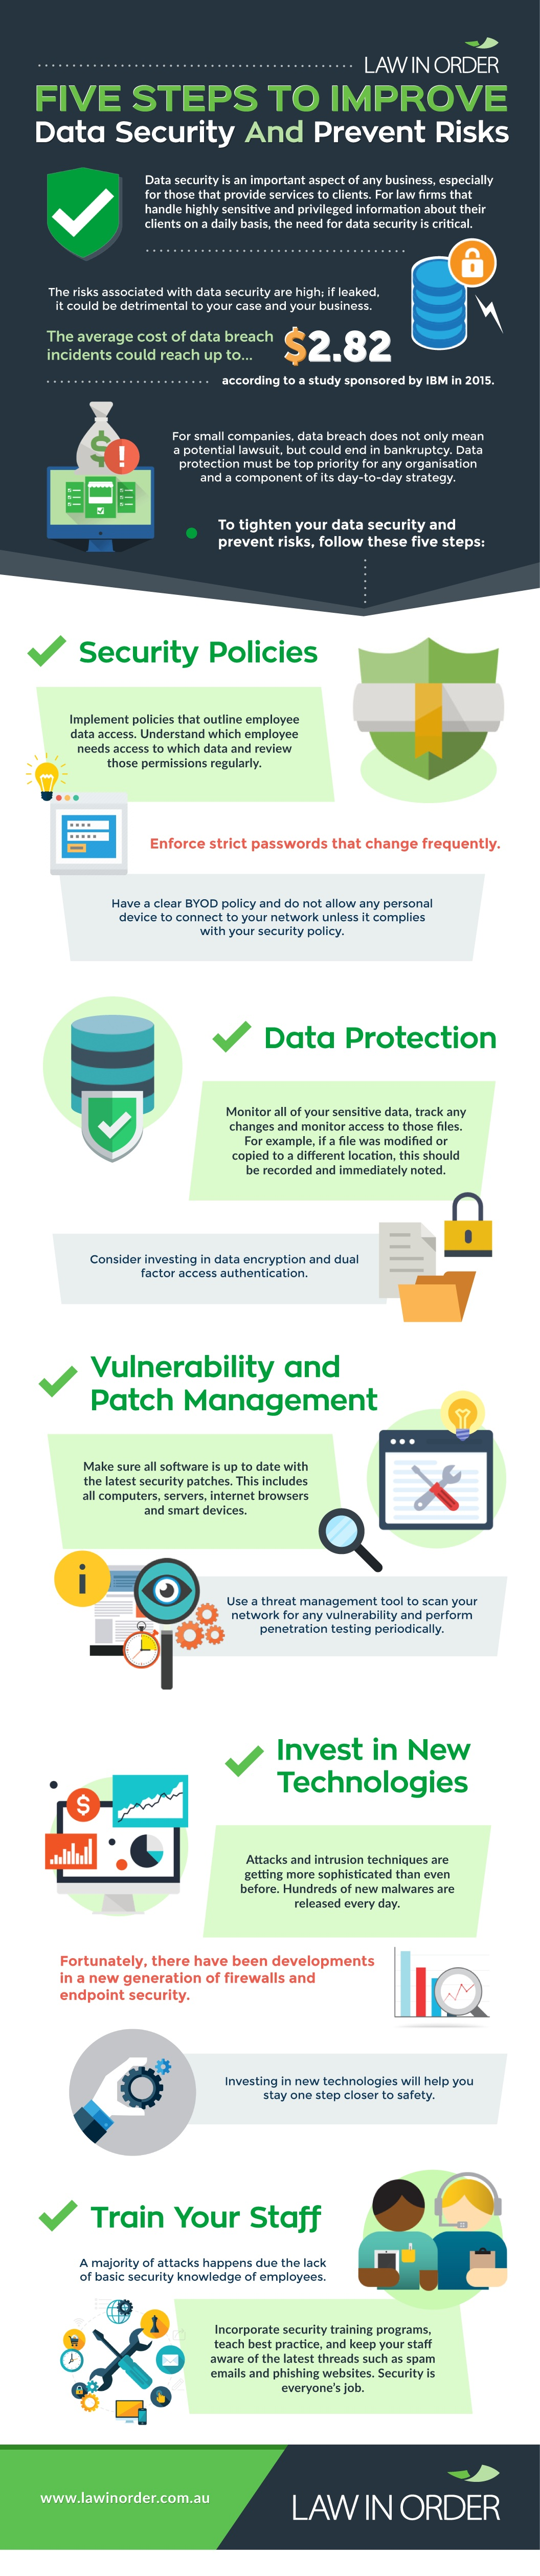 Five steps to improve Data-Security and prevent risks